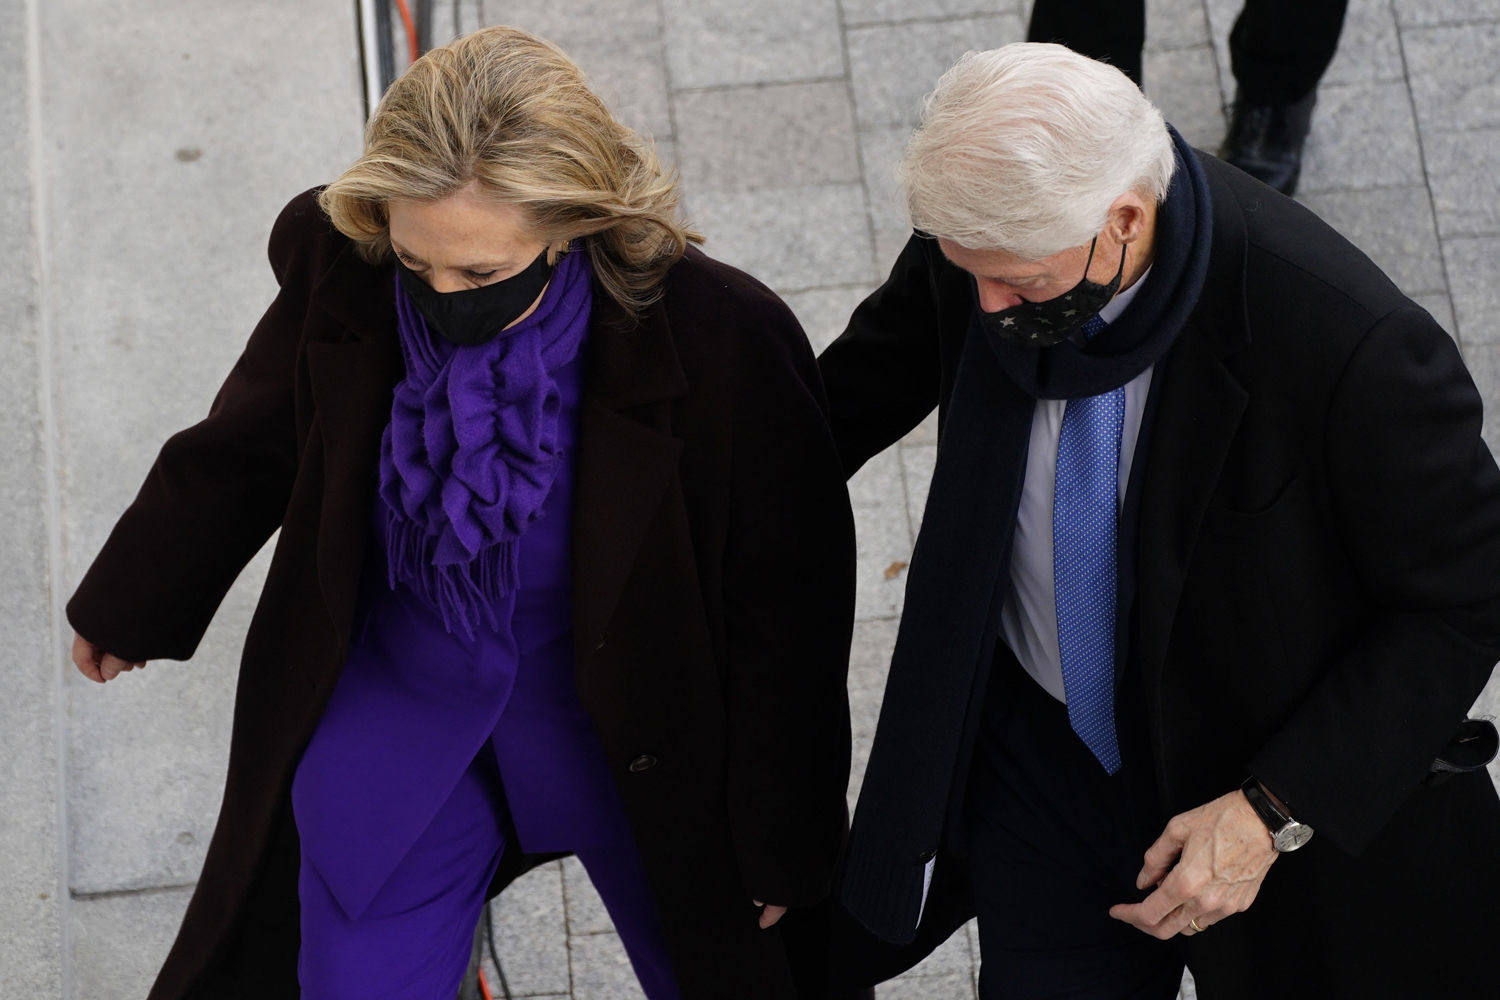 Former US First Lady and Secretary of State Hillary Clinton (L) and Former US President Bill Clinton (R) arrives for the inauguration of Joe Biden